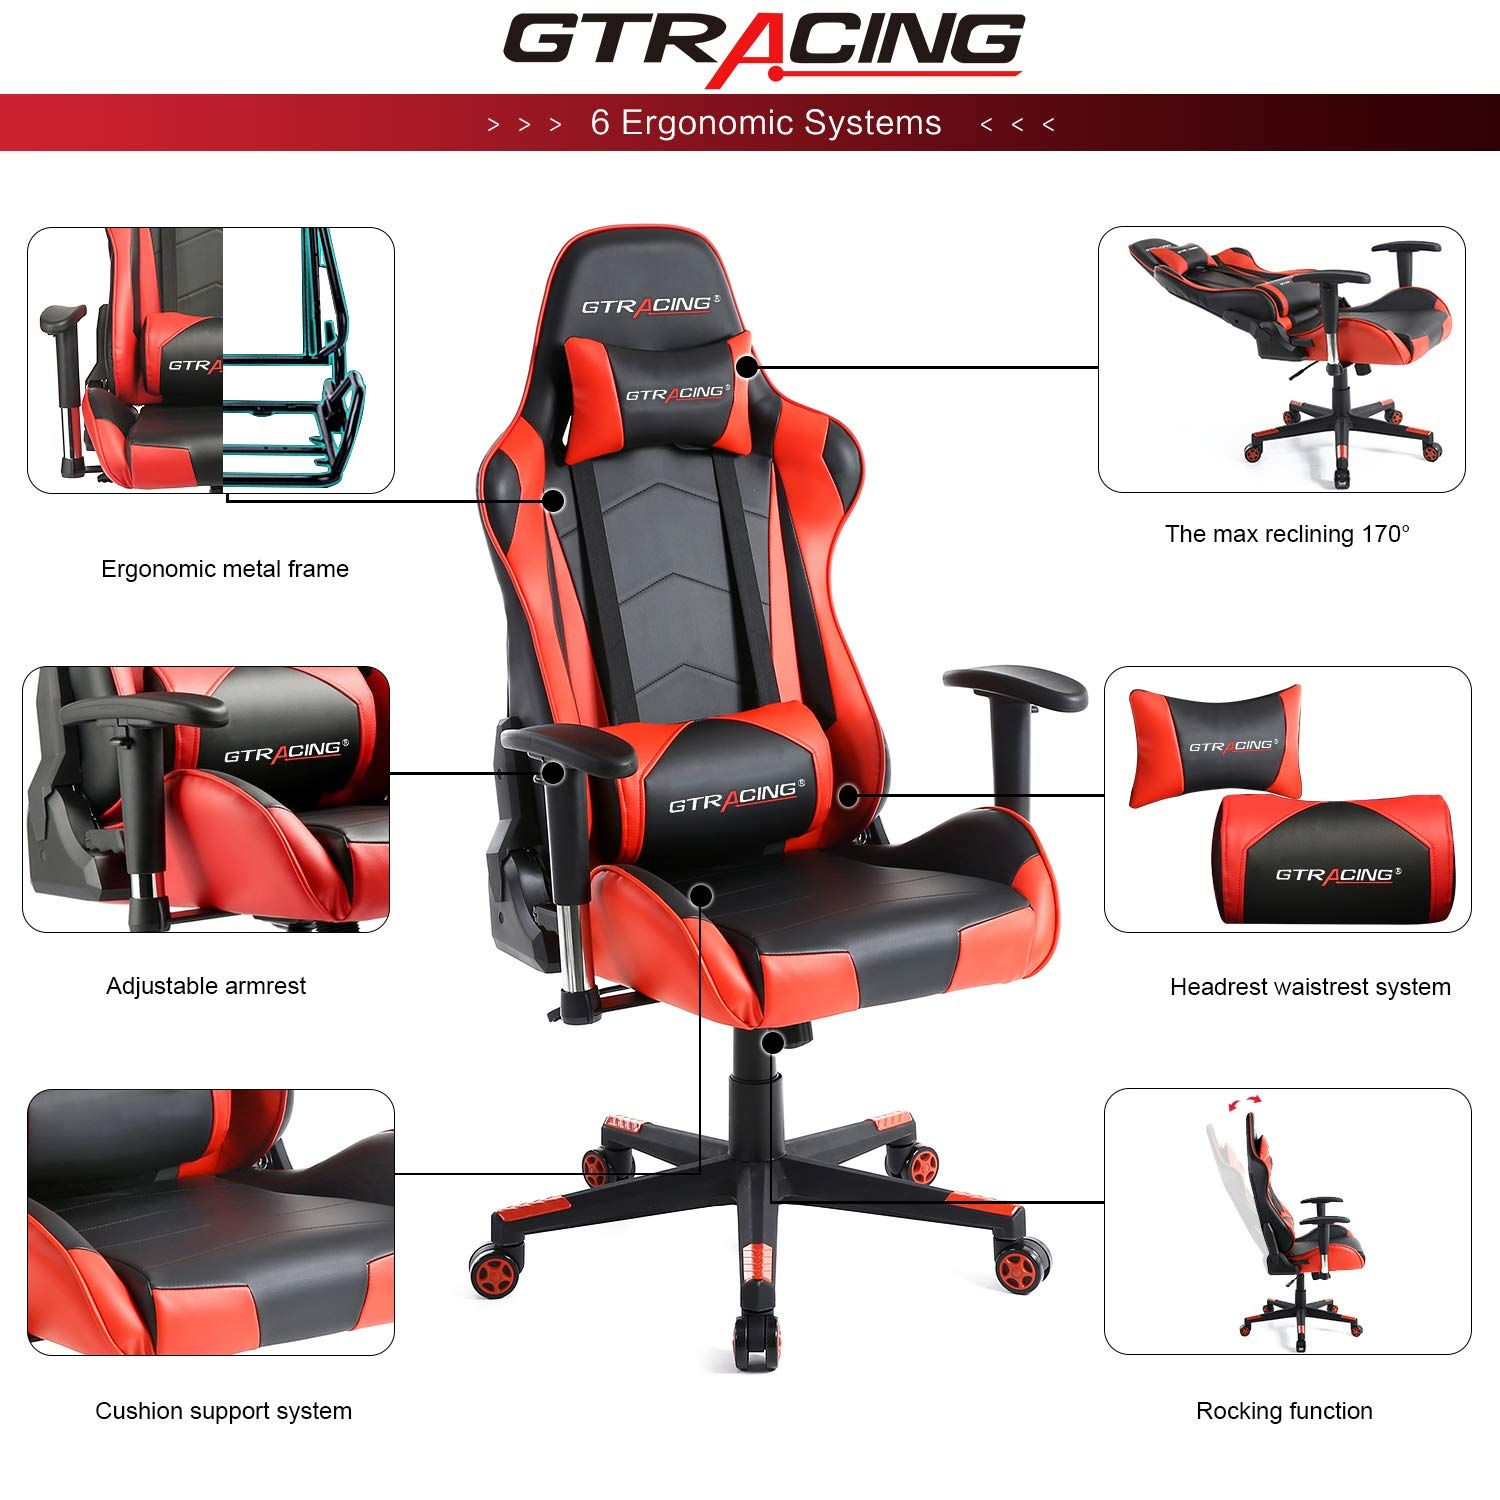 Perfect For Gaming Gtracing Is Dedicated To Make The Best Gaming Chair For Pro Gamers Choose Us And Improve Your Gaming Expe Sport Chair Gaming Chair Chair